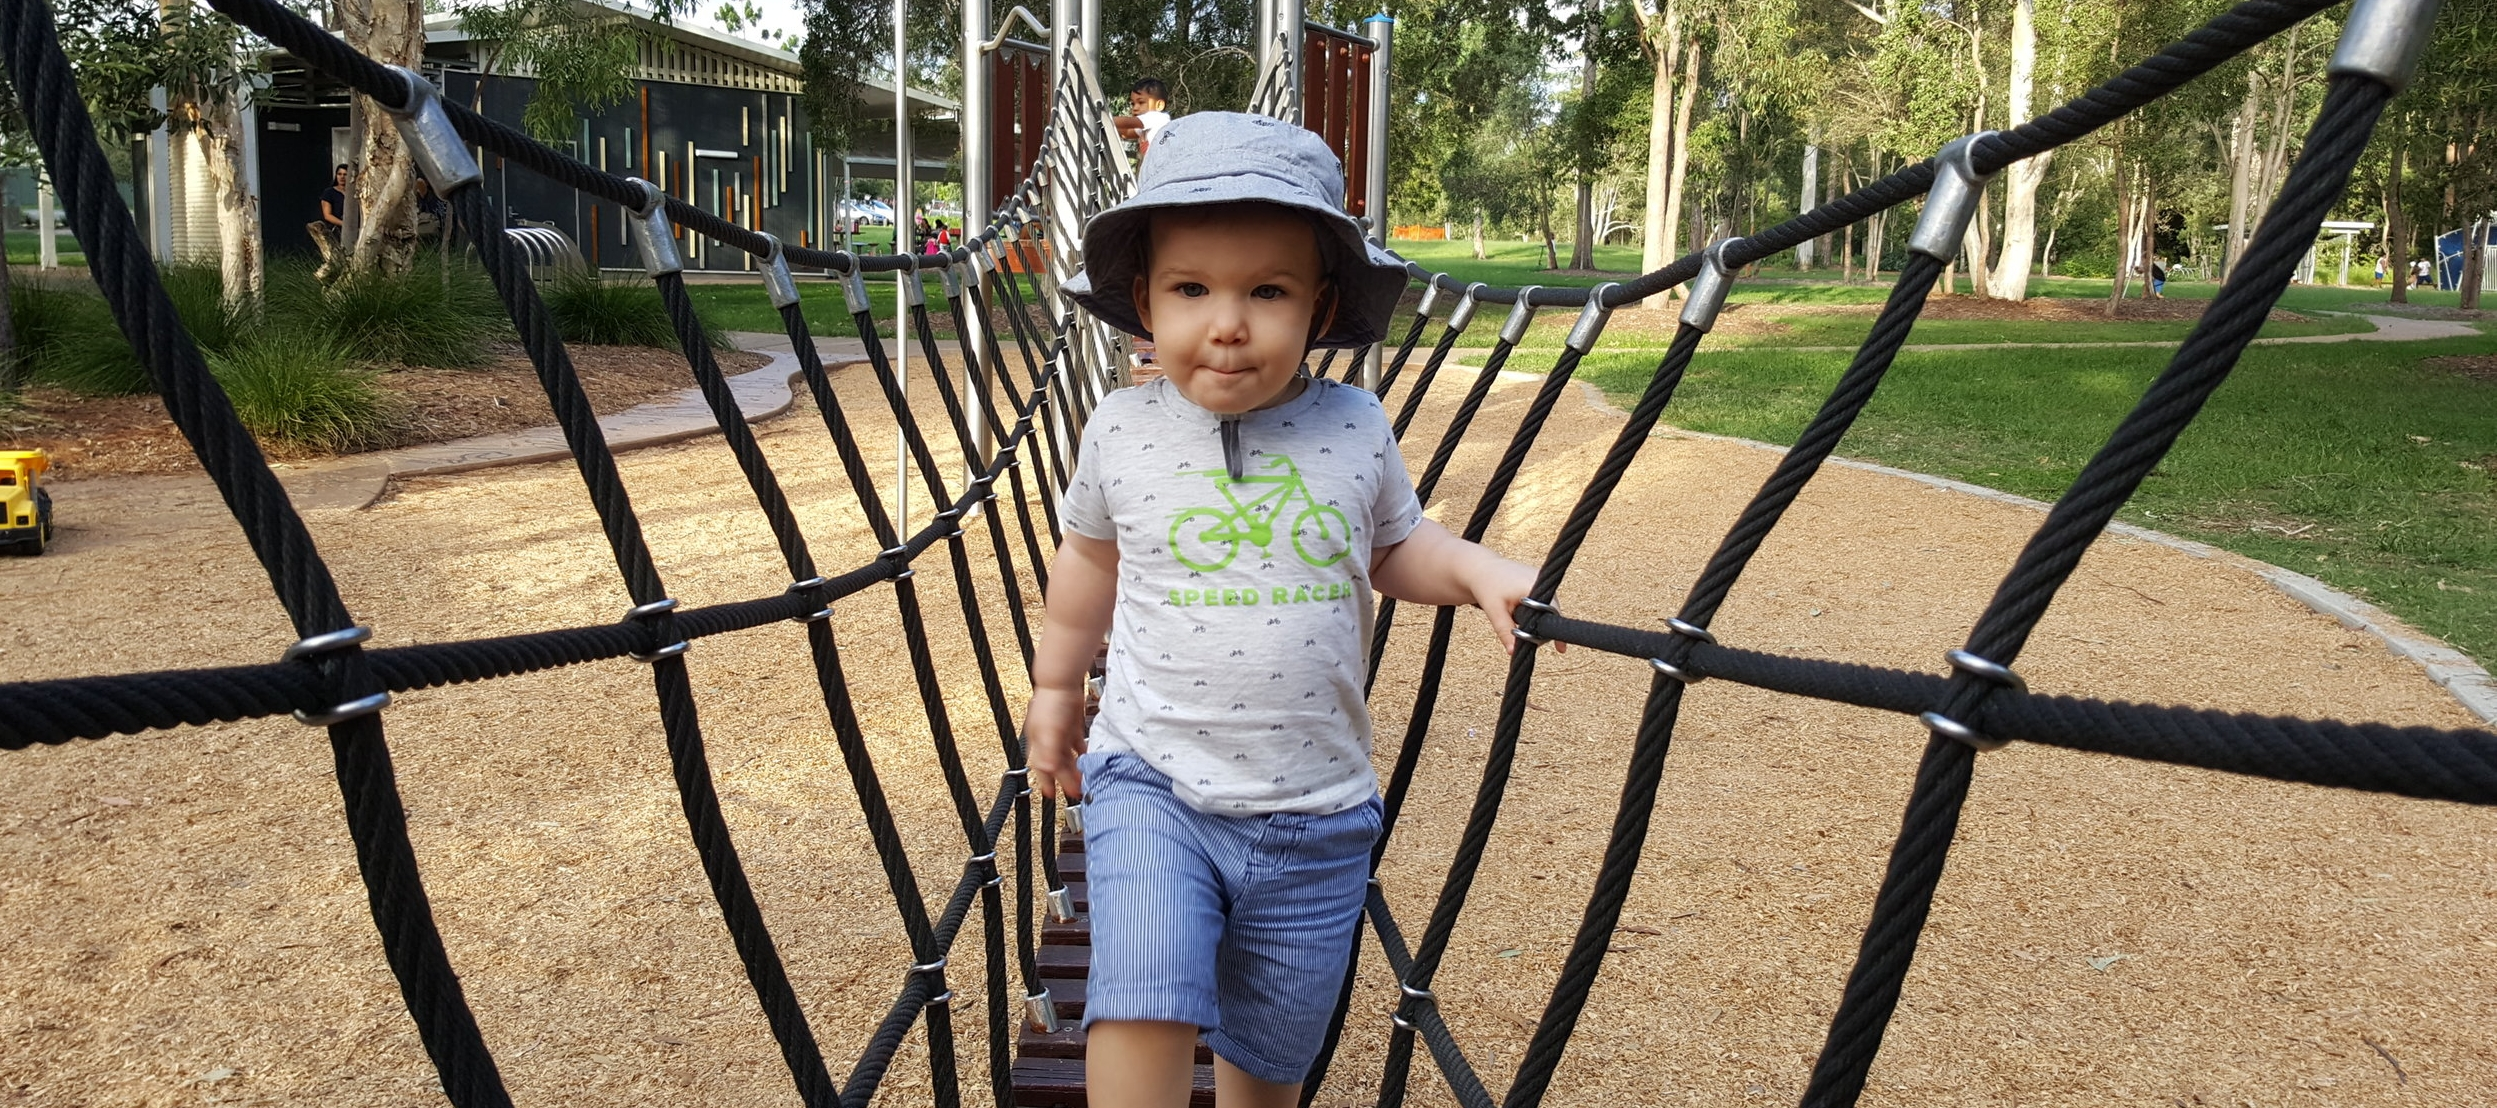 Harvey at the Park - One of his favourite places.